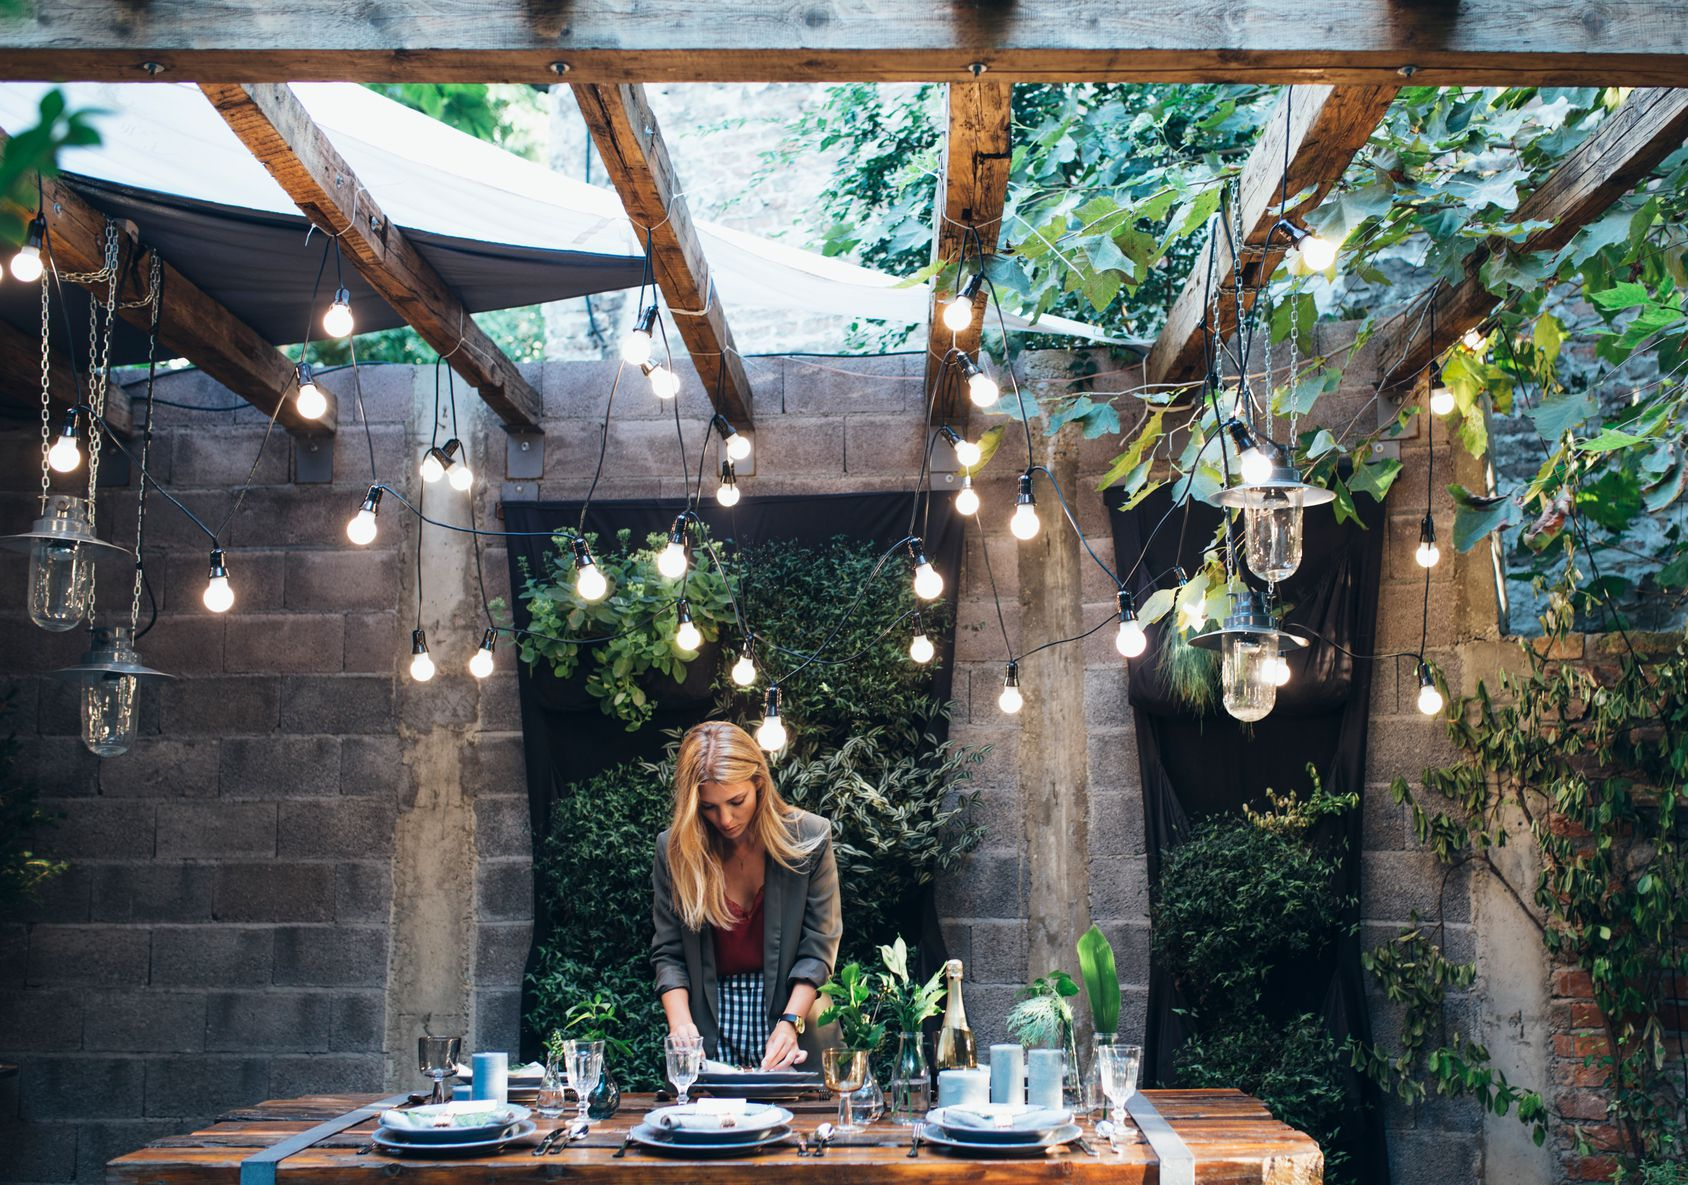 14 Best Outdoor Decorating Ideas for Small Spaces on Backyard Patio Decorating Ideas id=84673